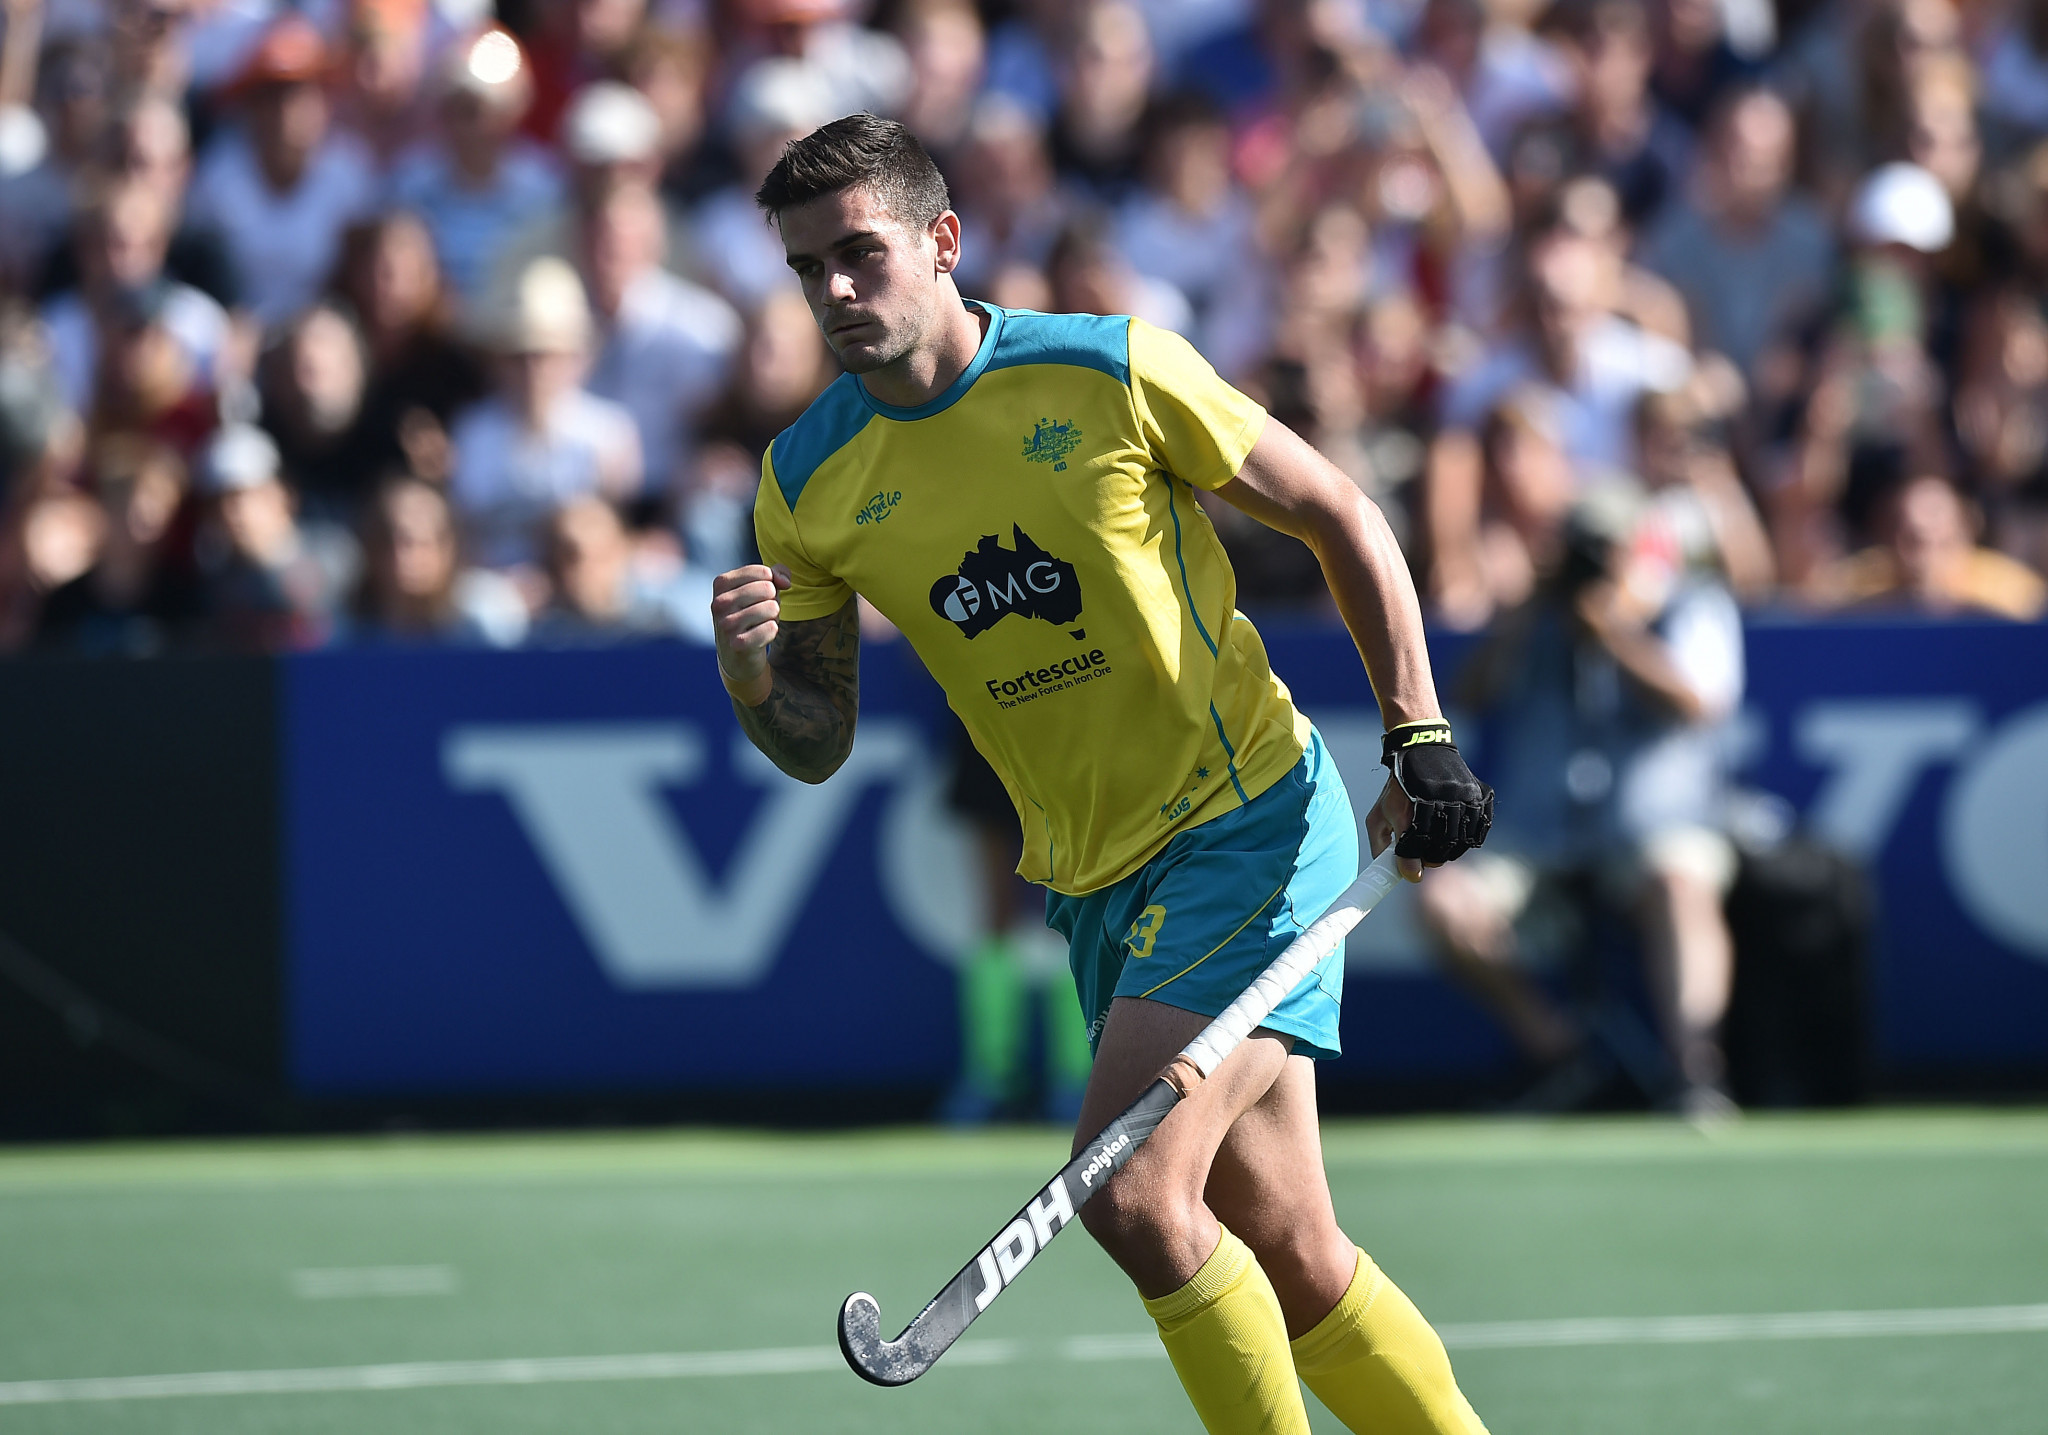 Australia's men off to a flyer at Oceania Hockey Cup as women's side lose